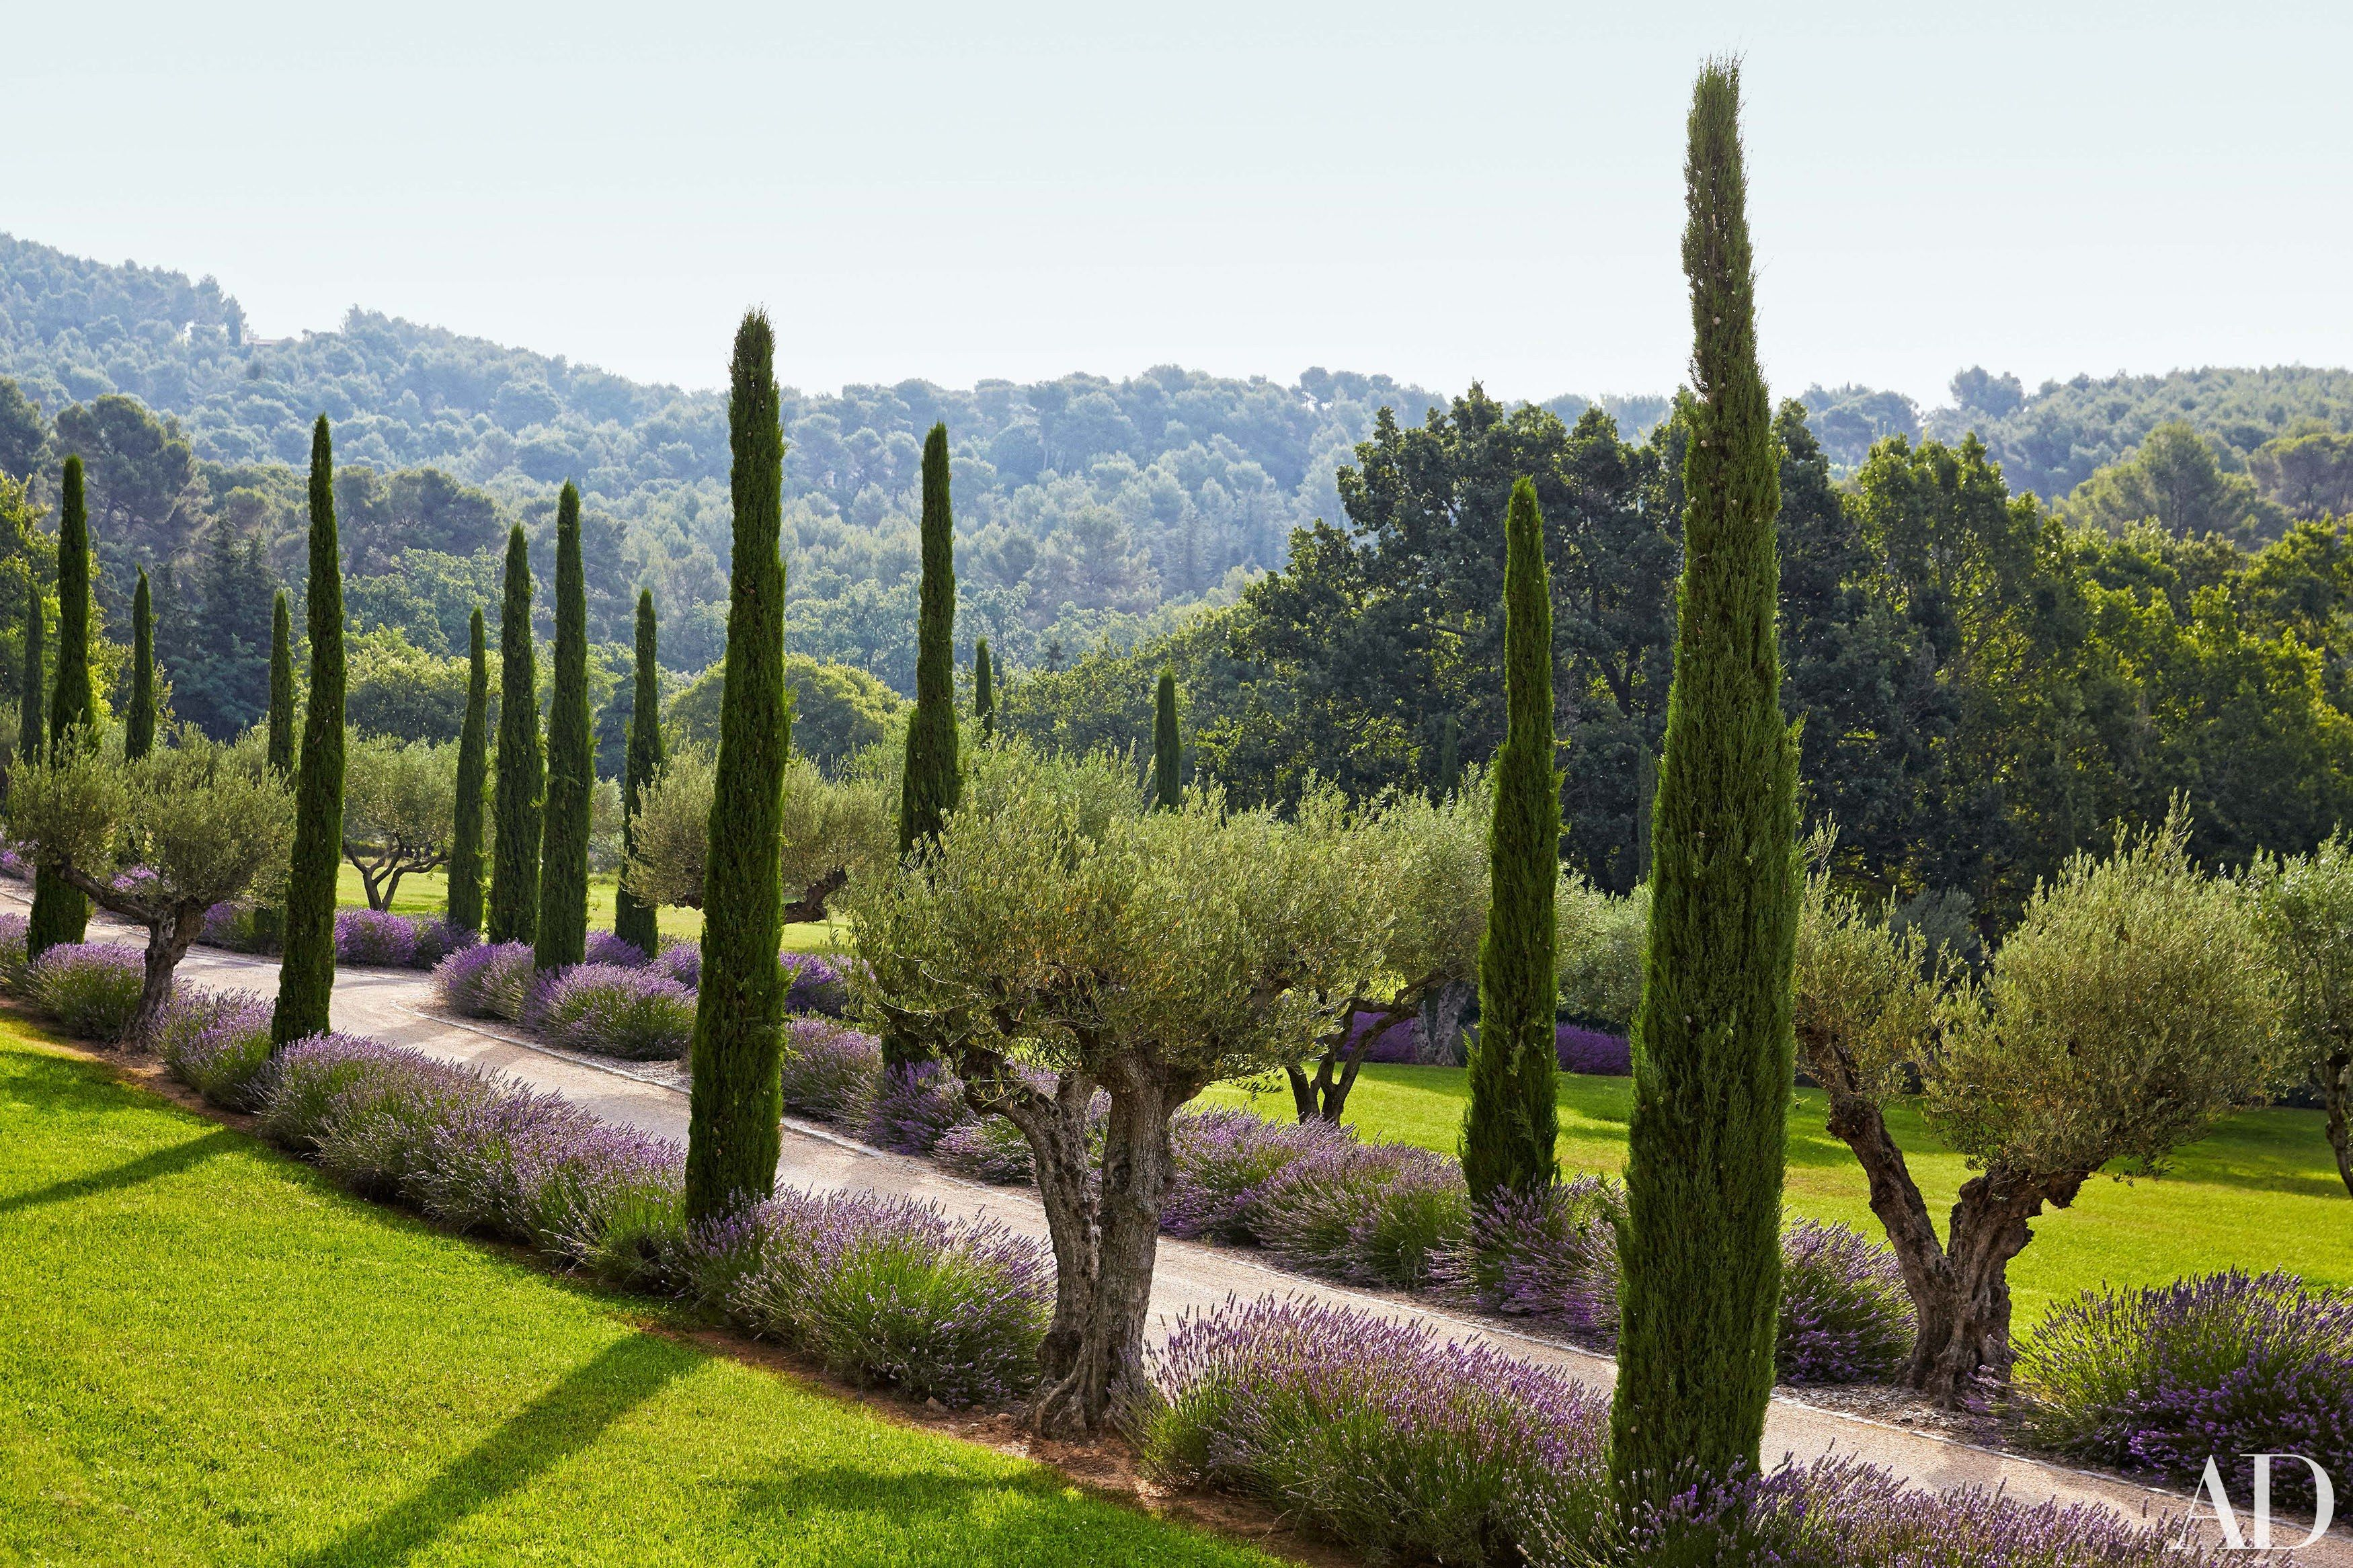 Frédéric Fekkai's entrance drive is lined with olive trees, lavender, and Provençal cypress, a symbol of welcome. Aix-en-Provence